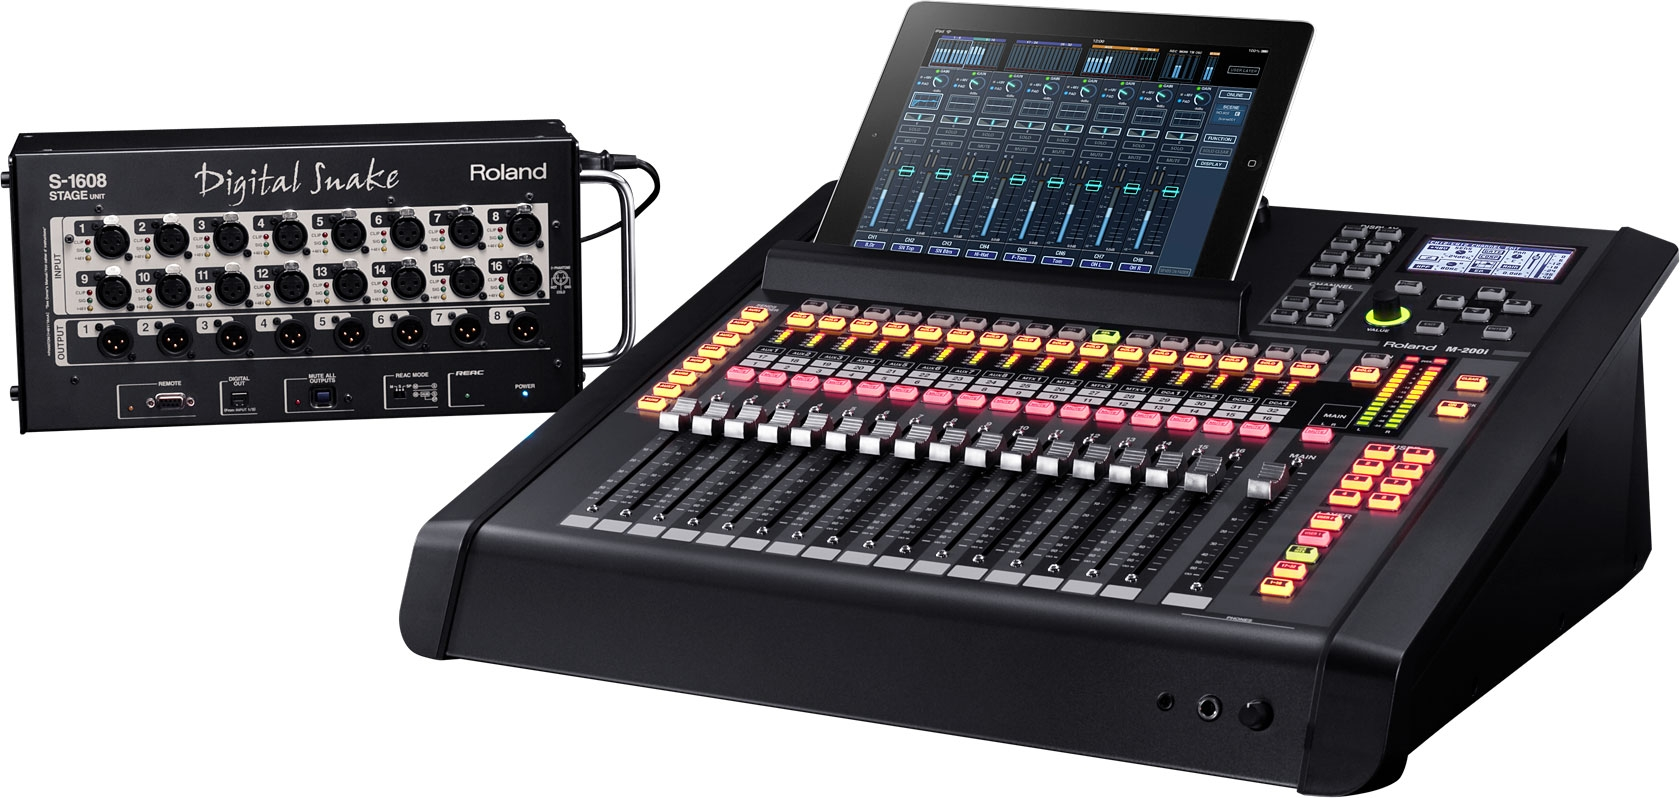 Roland Mixer Tour 2013a Age of Audio - Roland System Group M200i Video Reportage